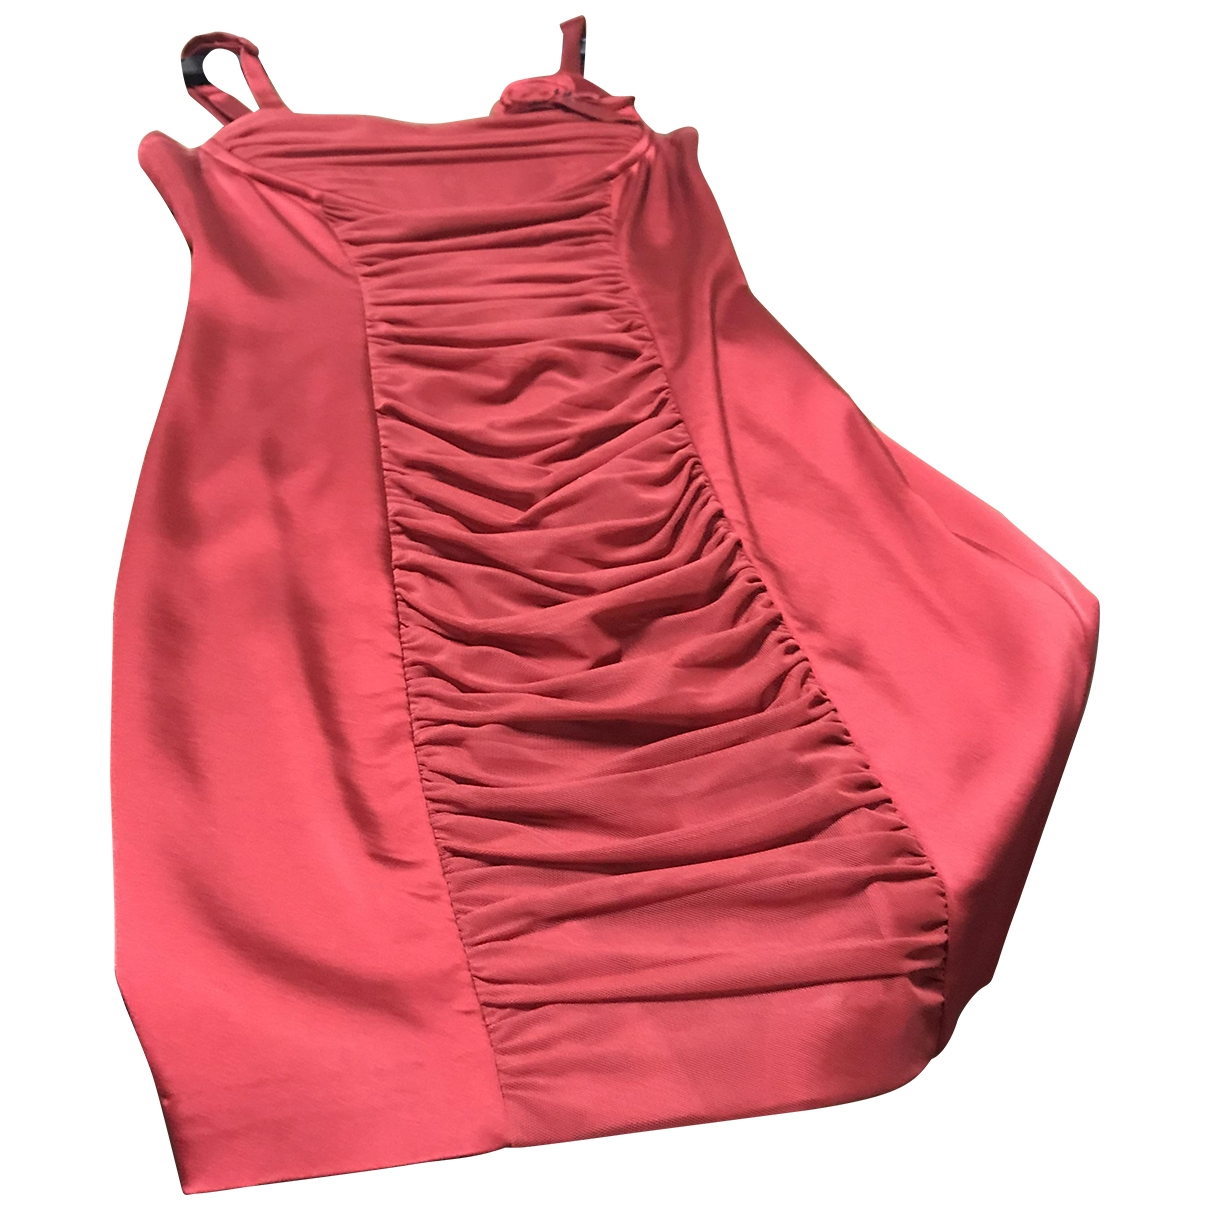 Max Azria \N Kleid in  Rot Polyester